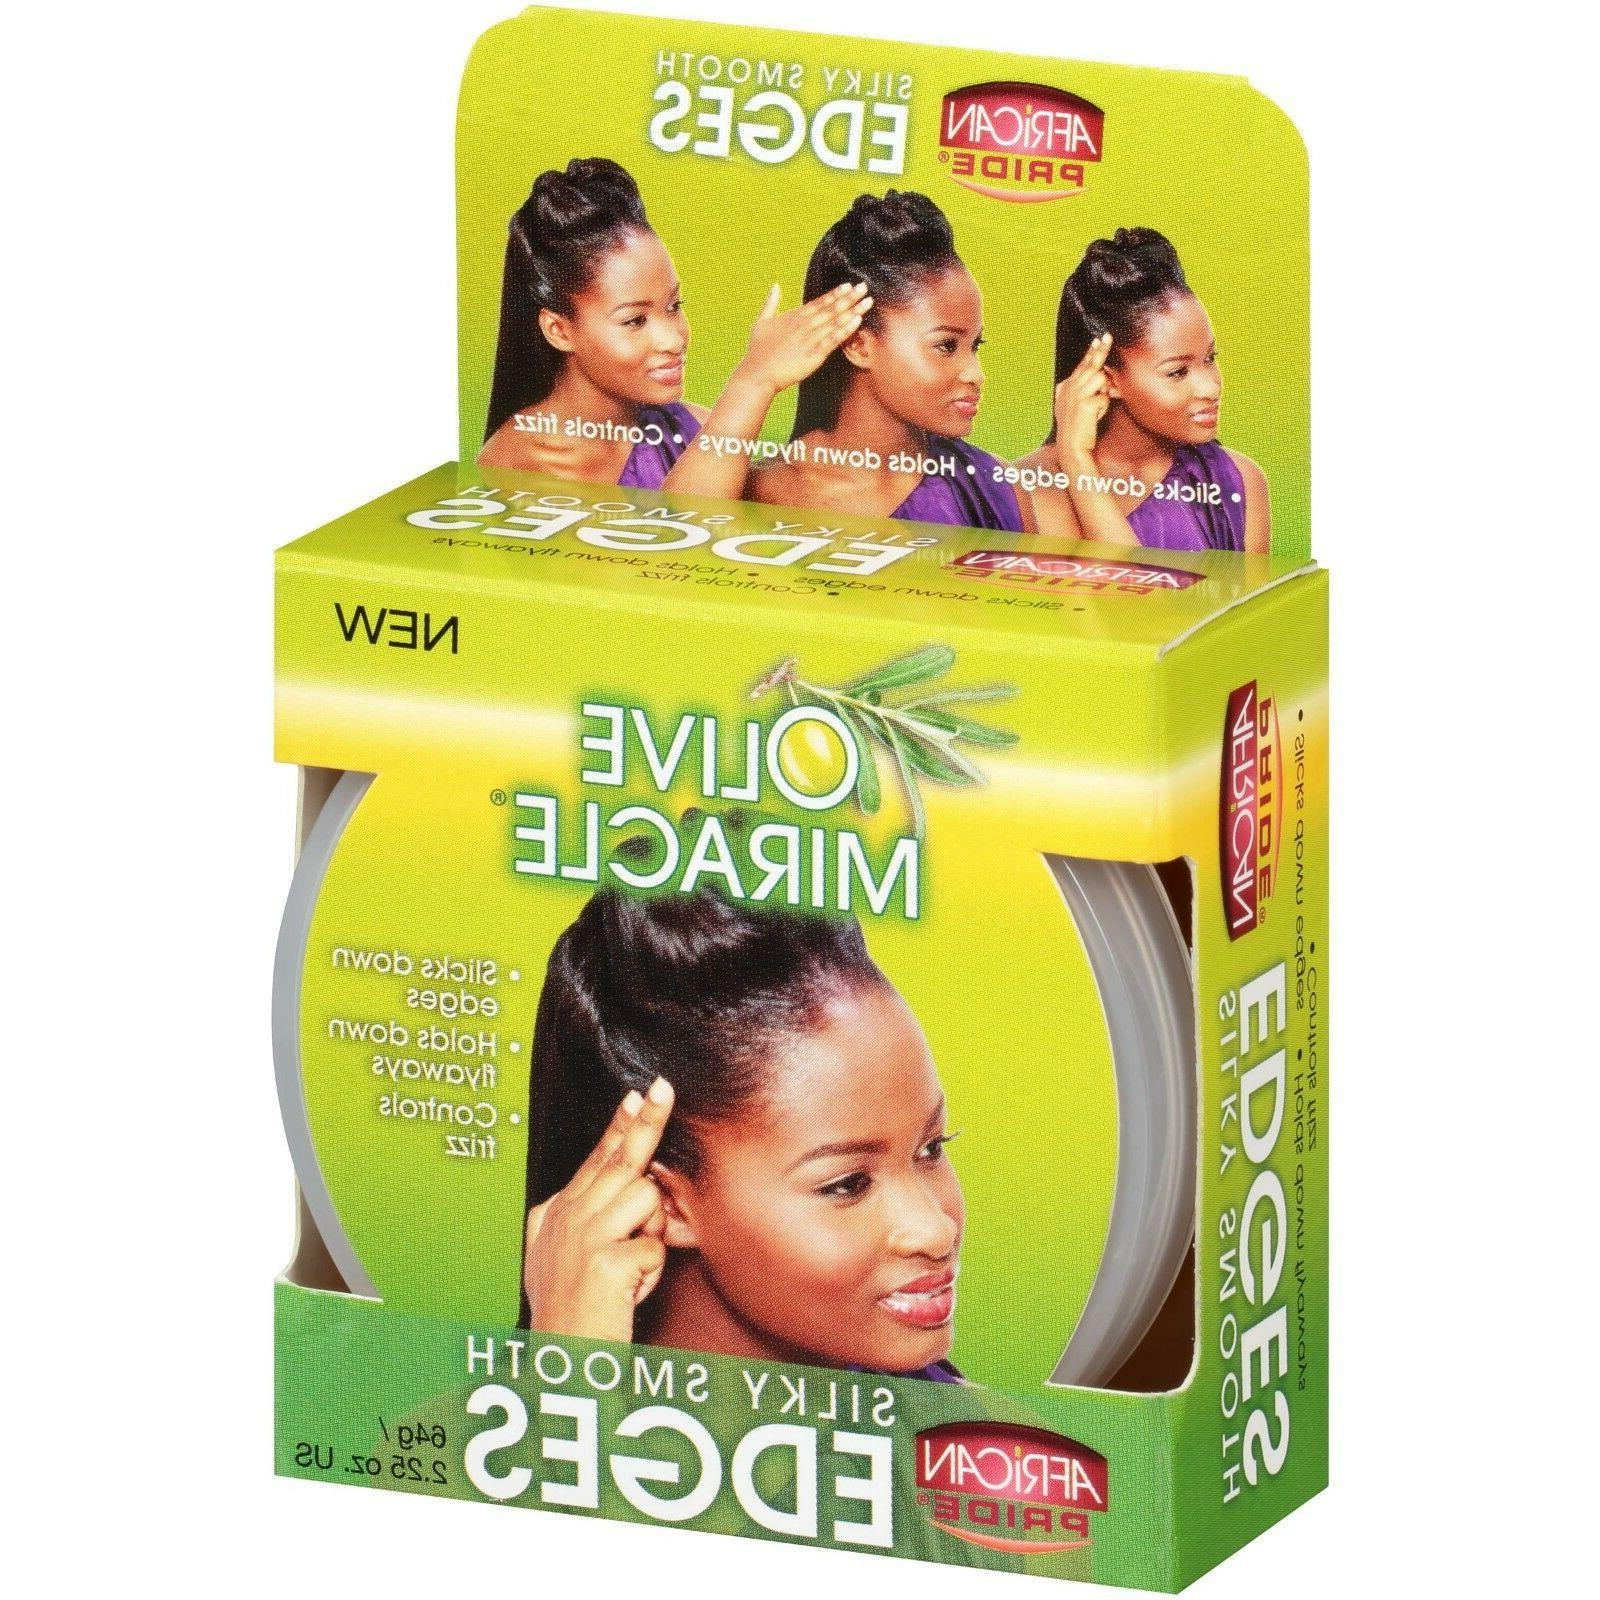 African Pride Silky Smooth Gel oz. Box, 12pk